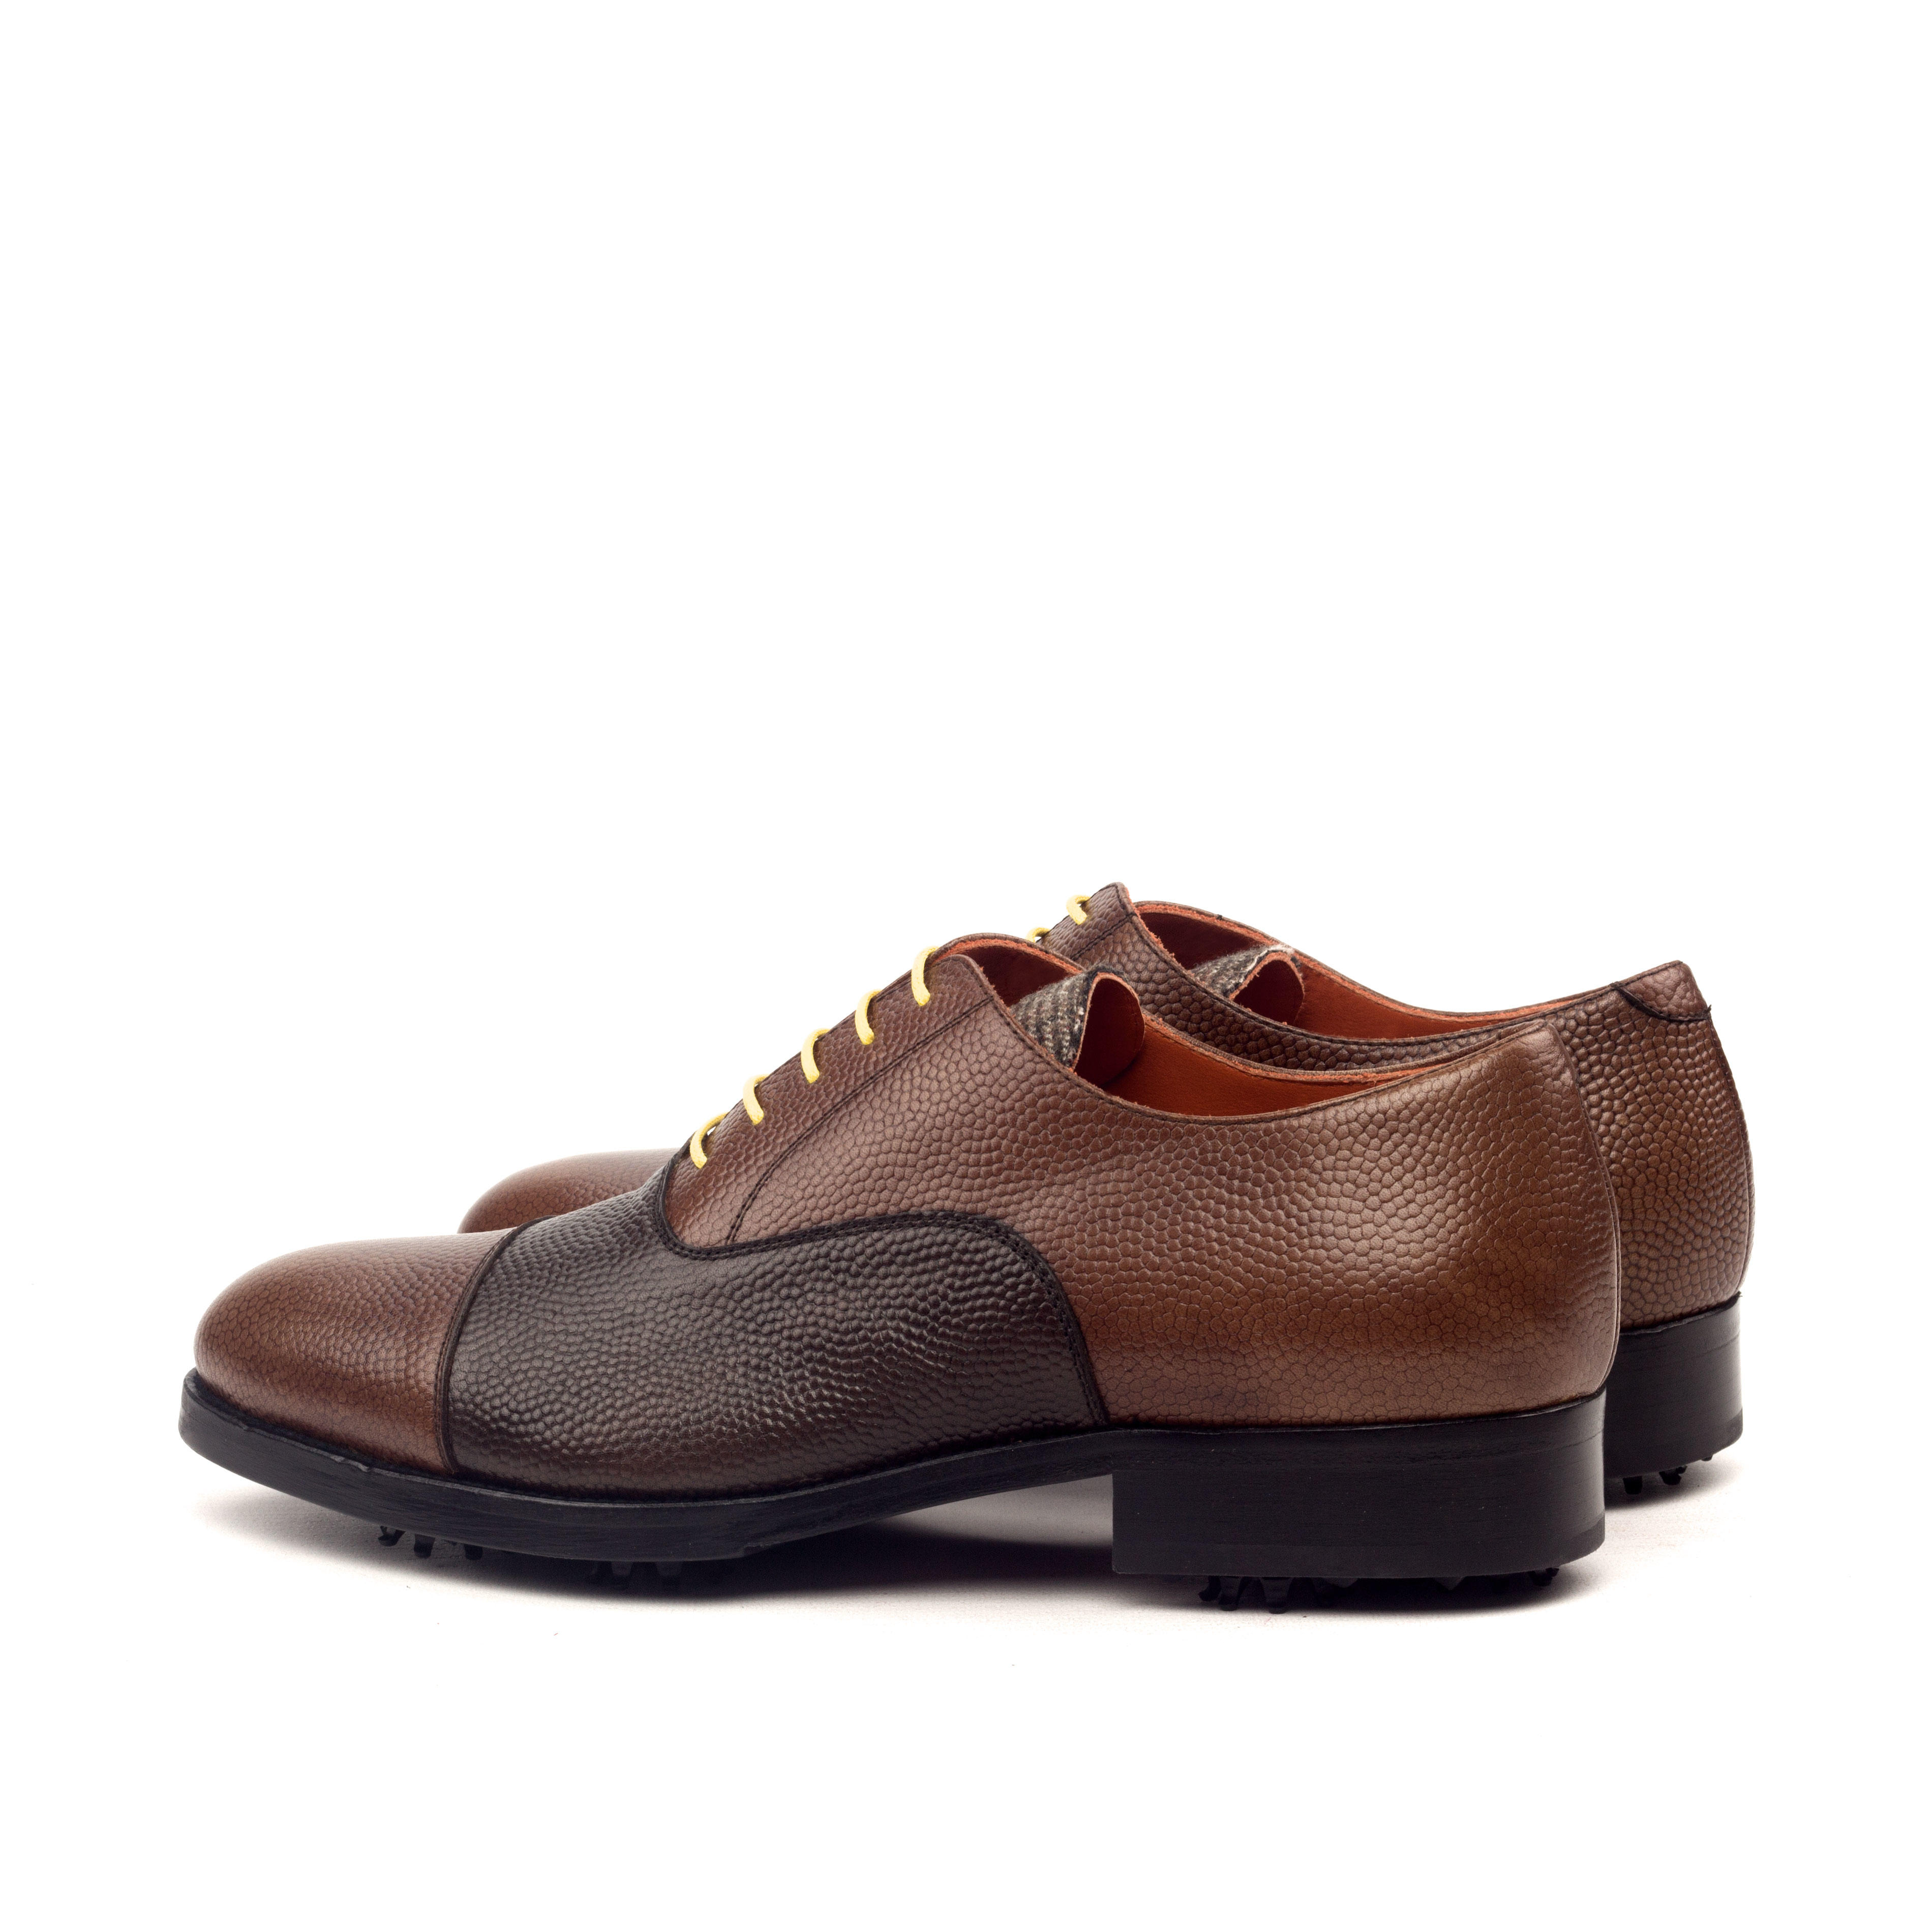 MANOR OF LONDON 'The Oxford' Two Tone Brown Pebble Grain Golfing Shoe Luxury Custom Initials Monogrammed Back Side View